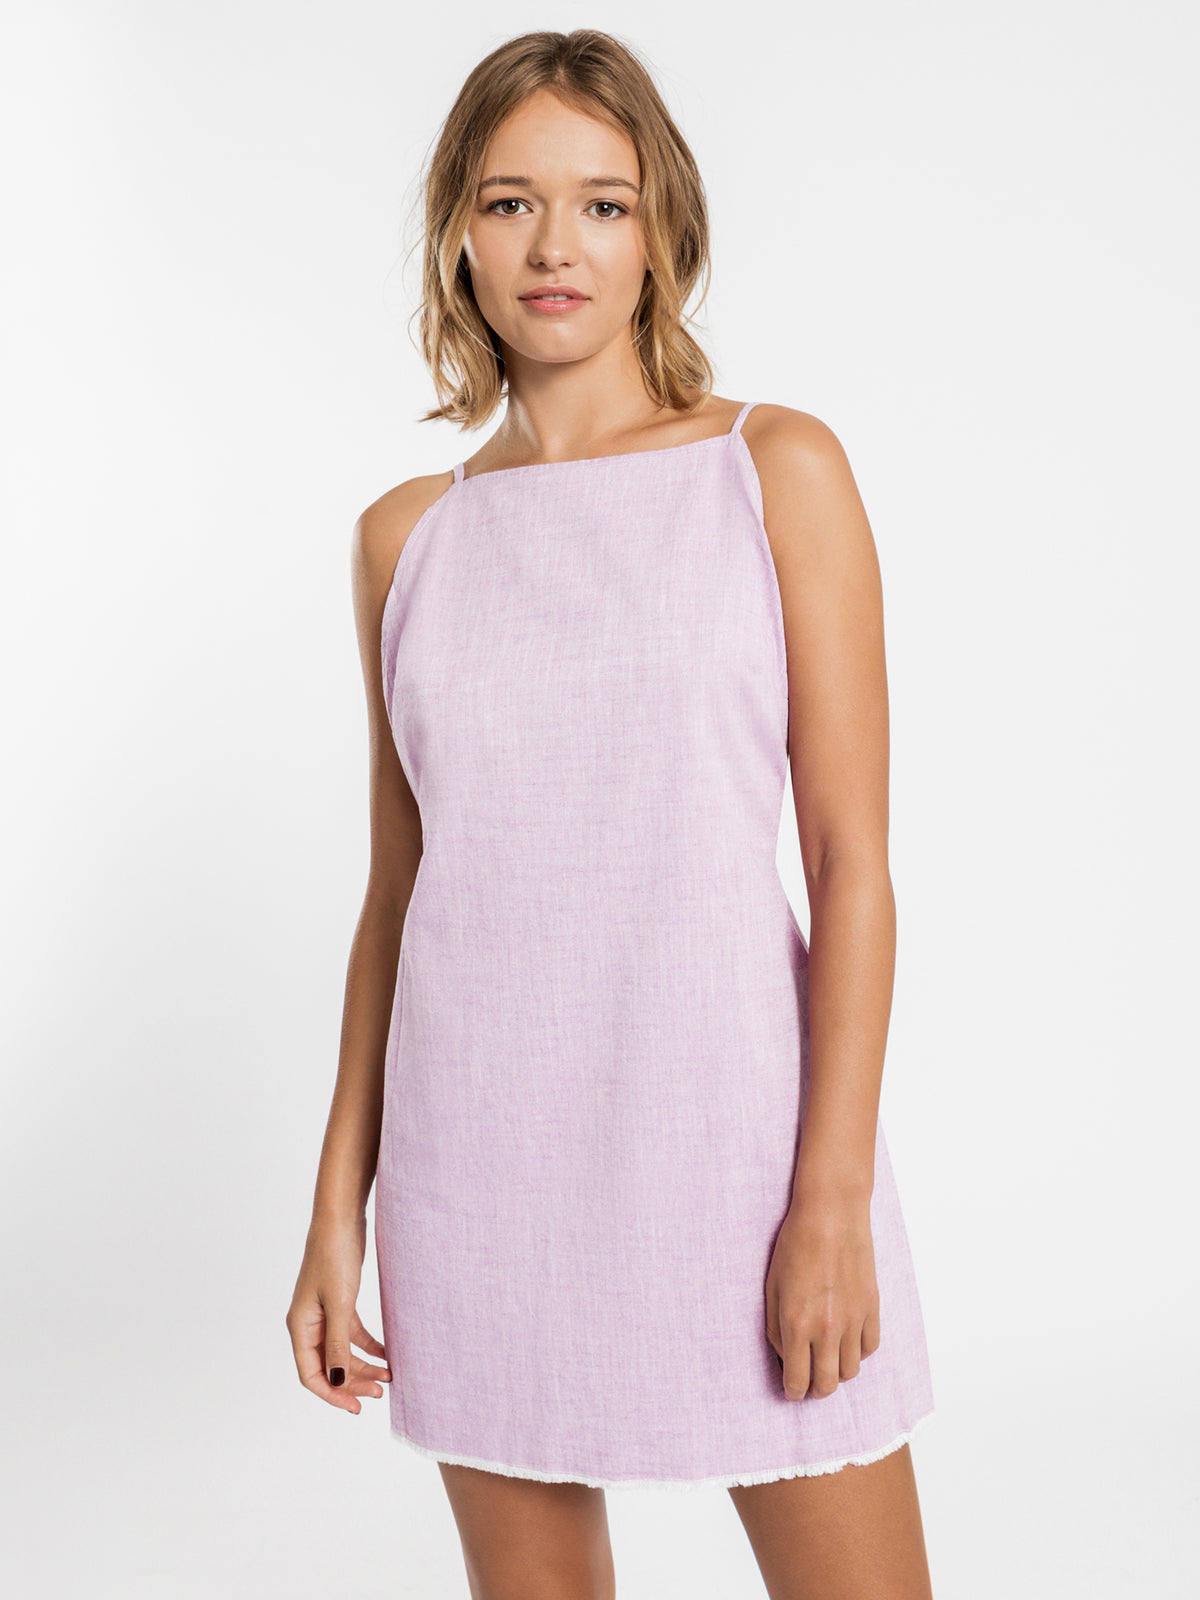 Electra Woven Textured Dress in Violet